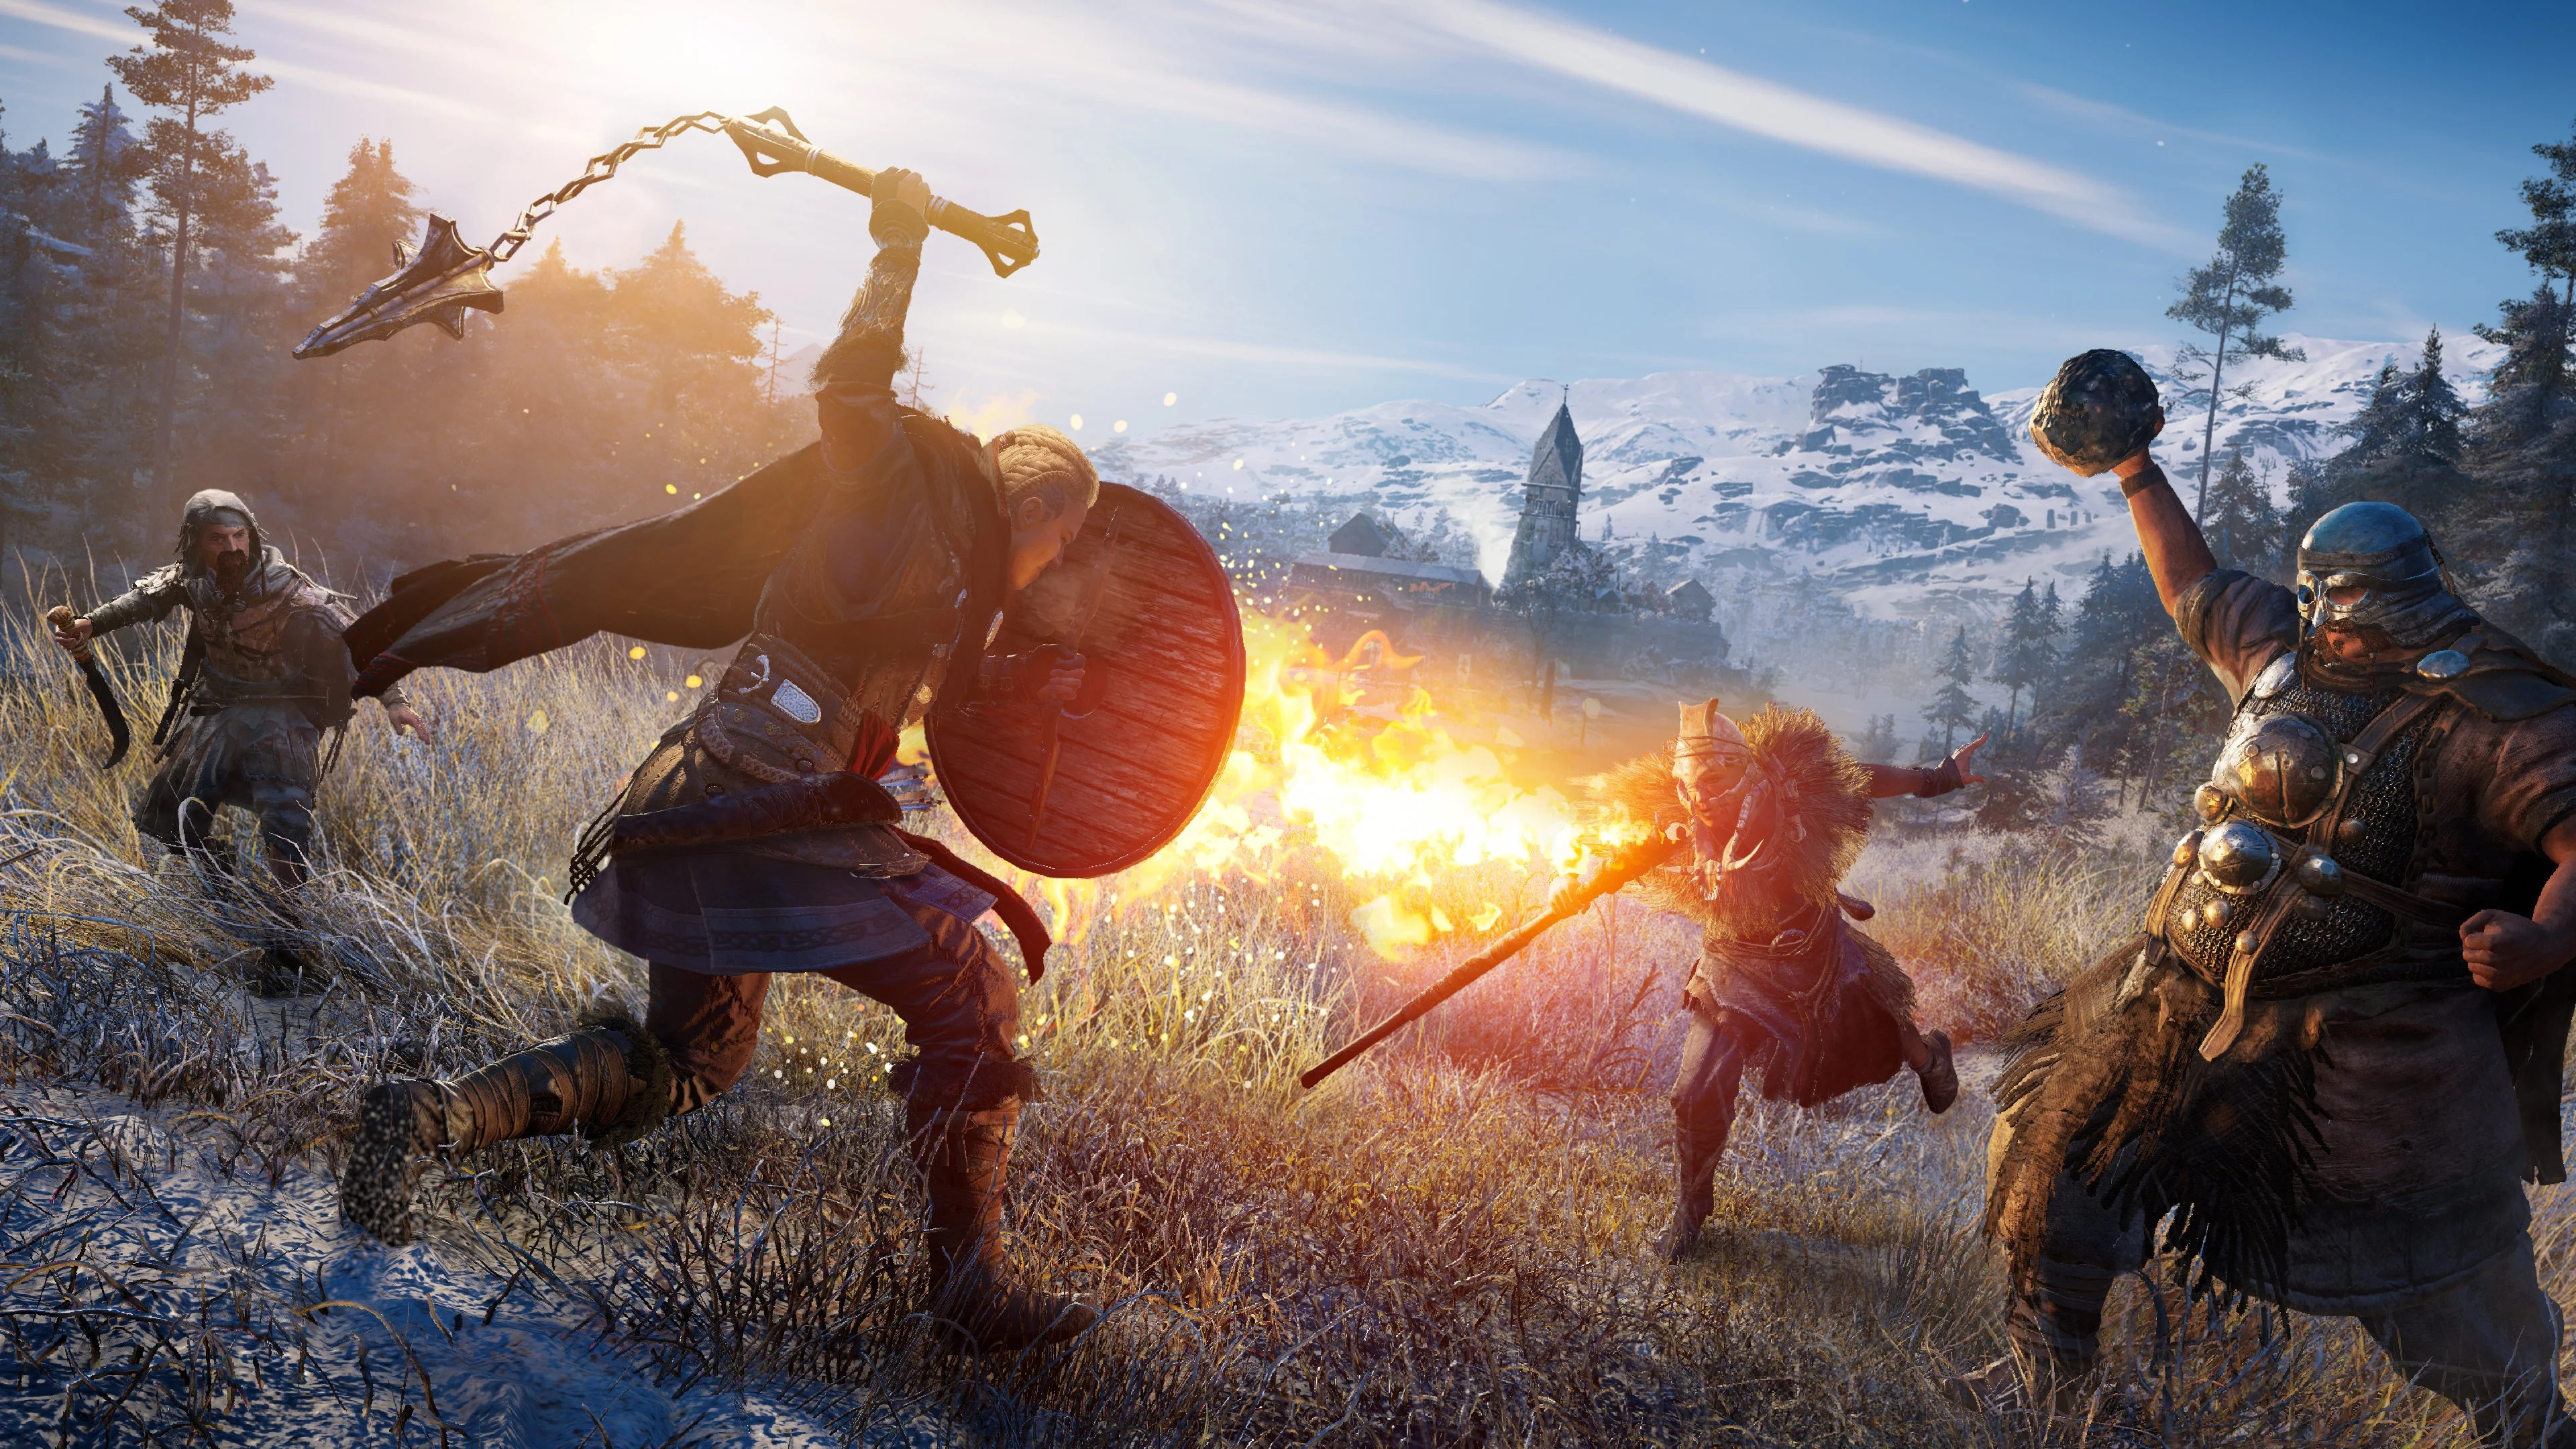 Assassin S Creed Valhalla Has World Events Rather Than Side Quests